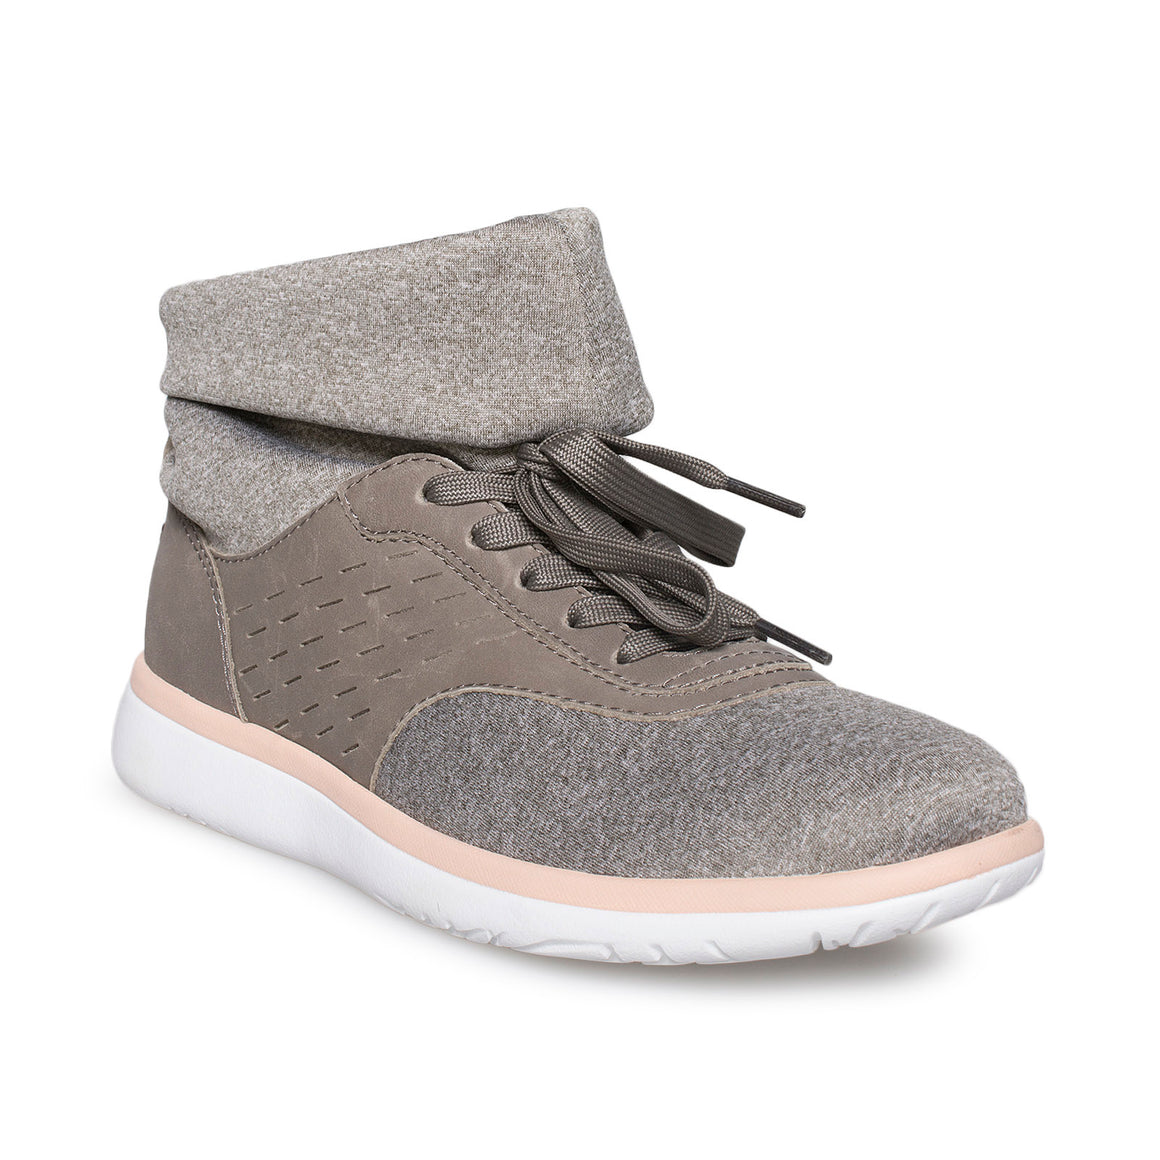 UGG Islay Mole Sneakers